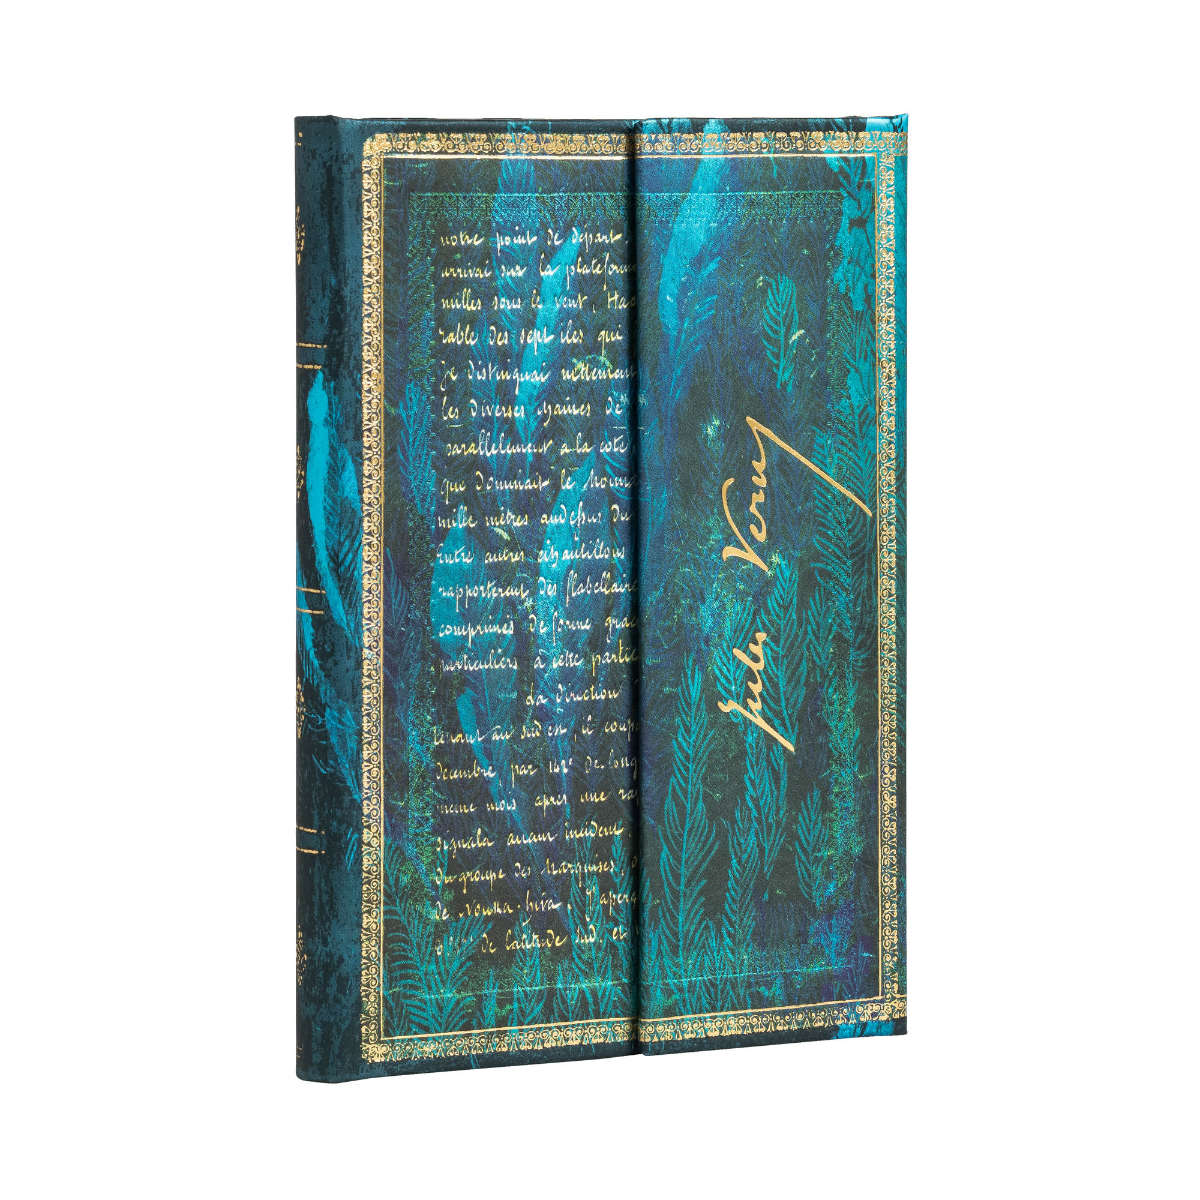 Paperblanks Verne Twenty Thousand Leagues Mini 4x5.5 Inch